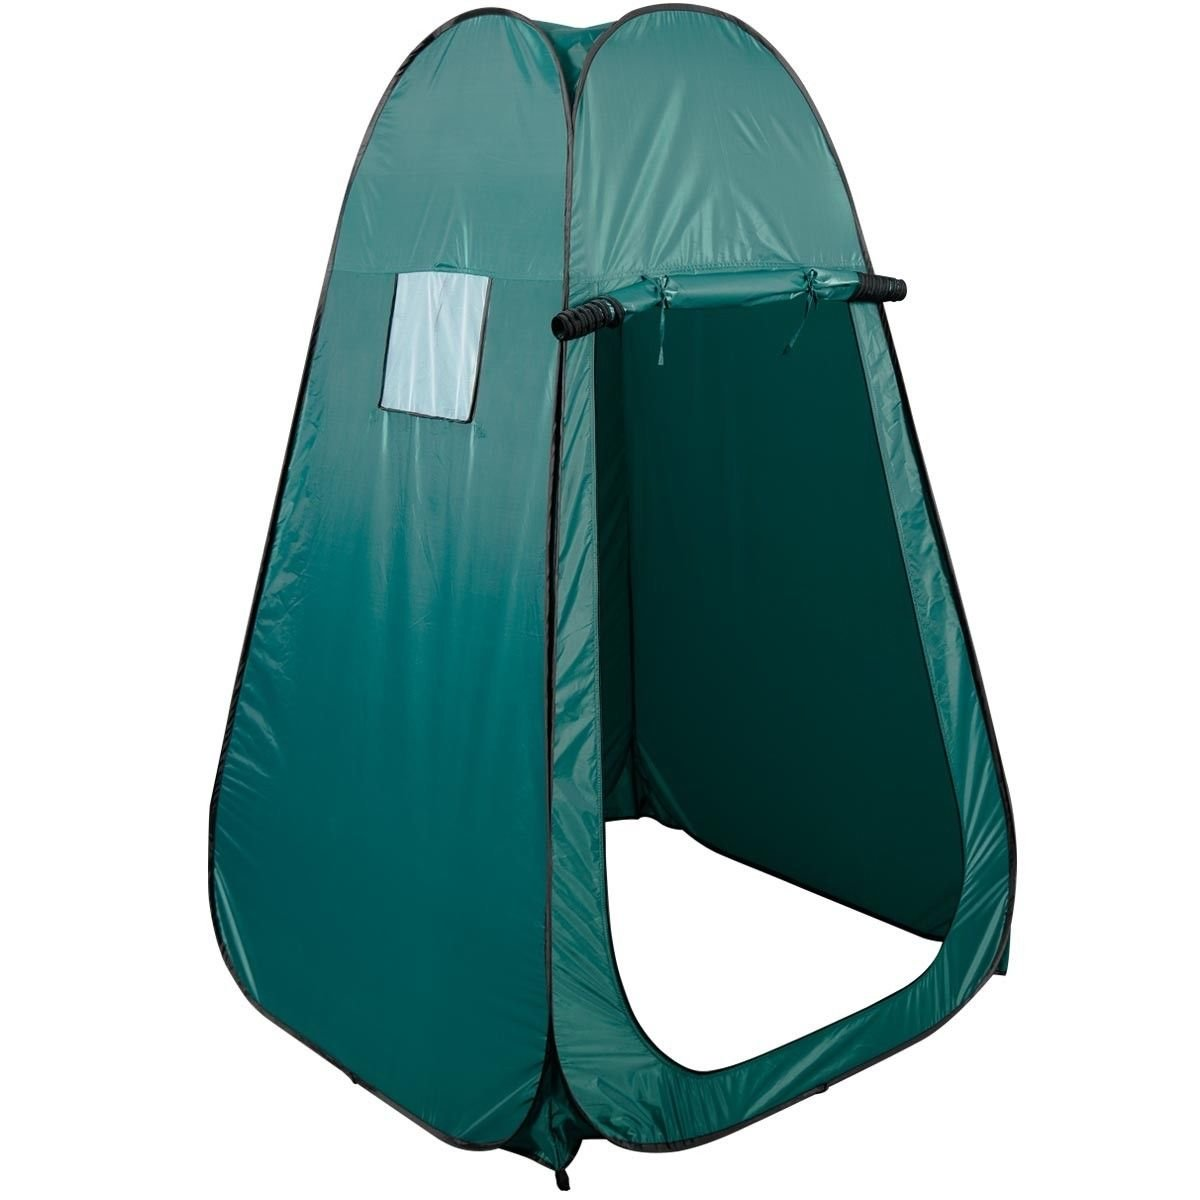 Amazon.com: Super buy Portable Changing Tent Pop-Up Privacy Room ...